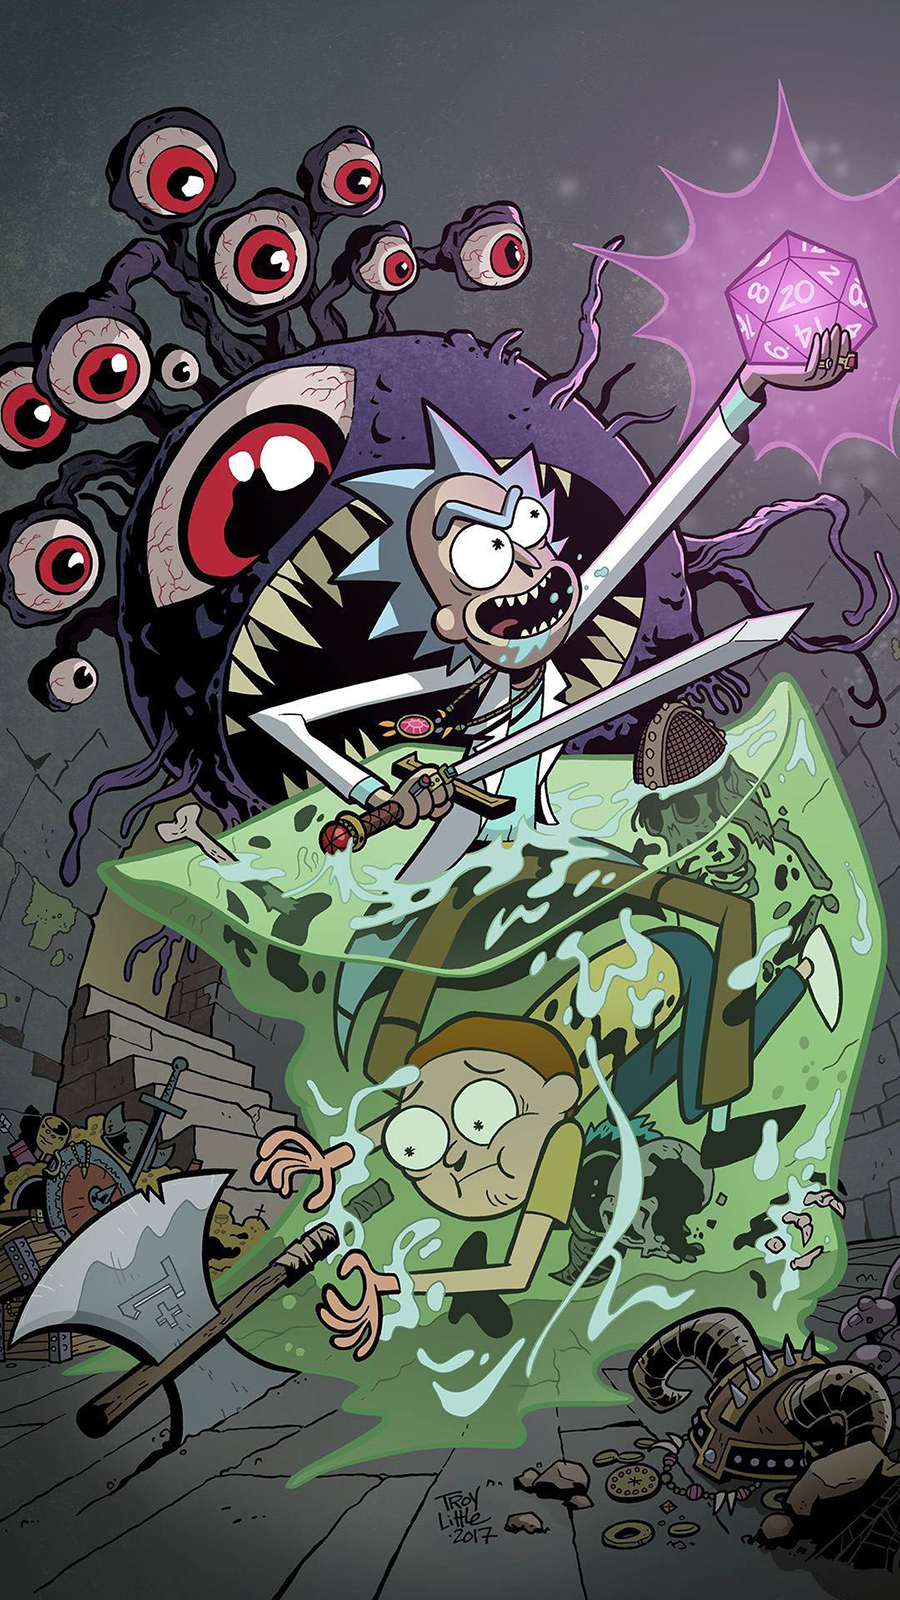 Rick & Morty Monster War Wallpapers Now Download For Your Device